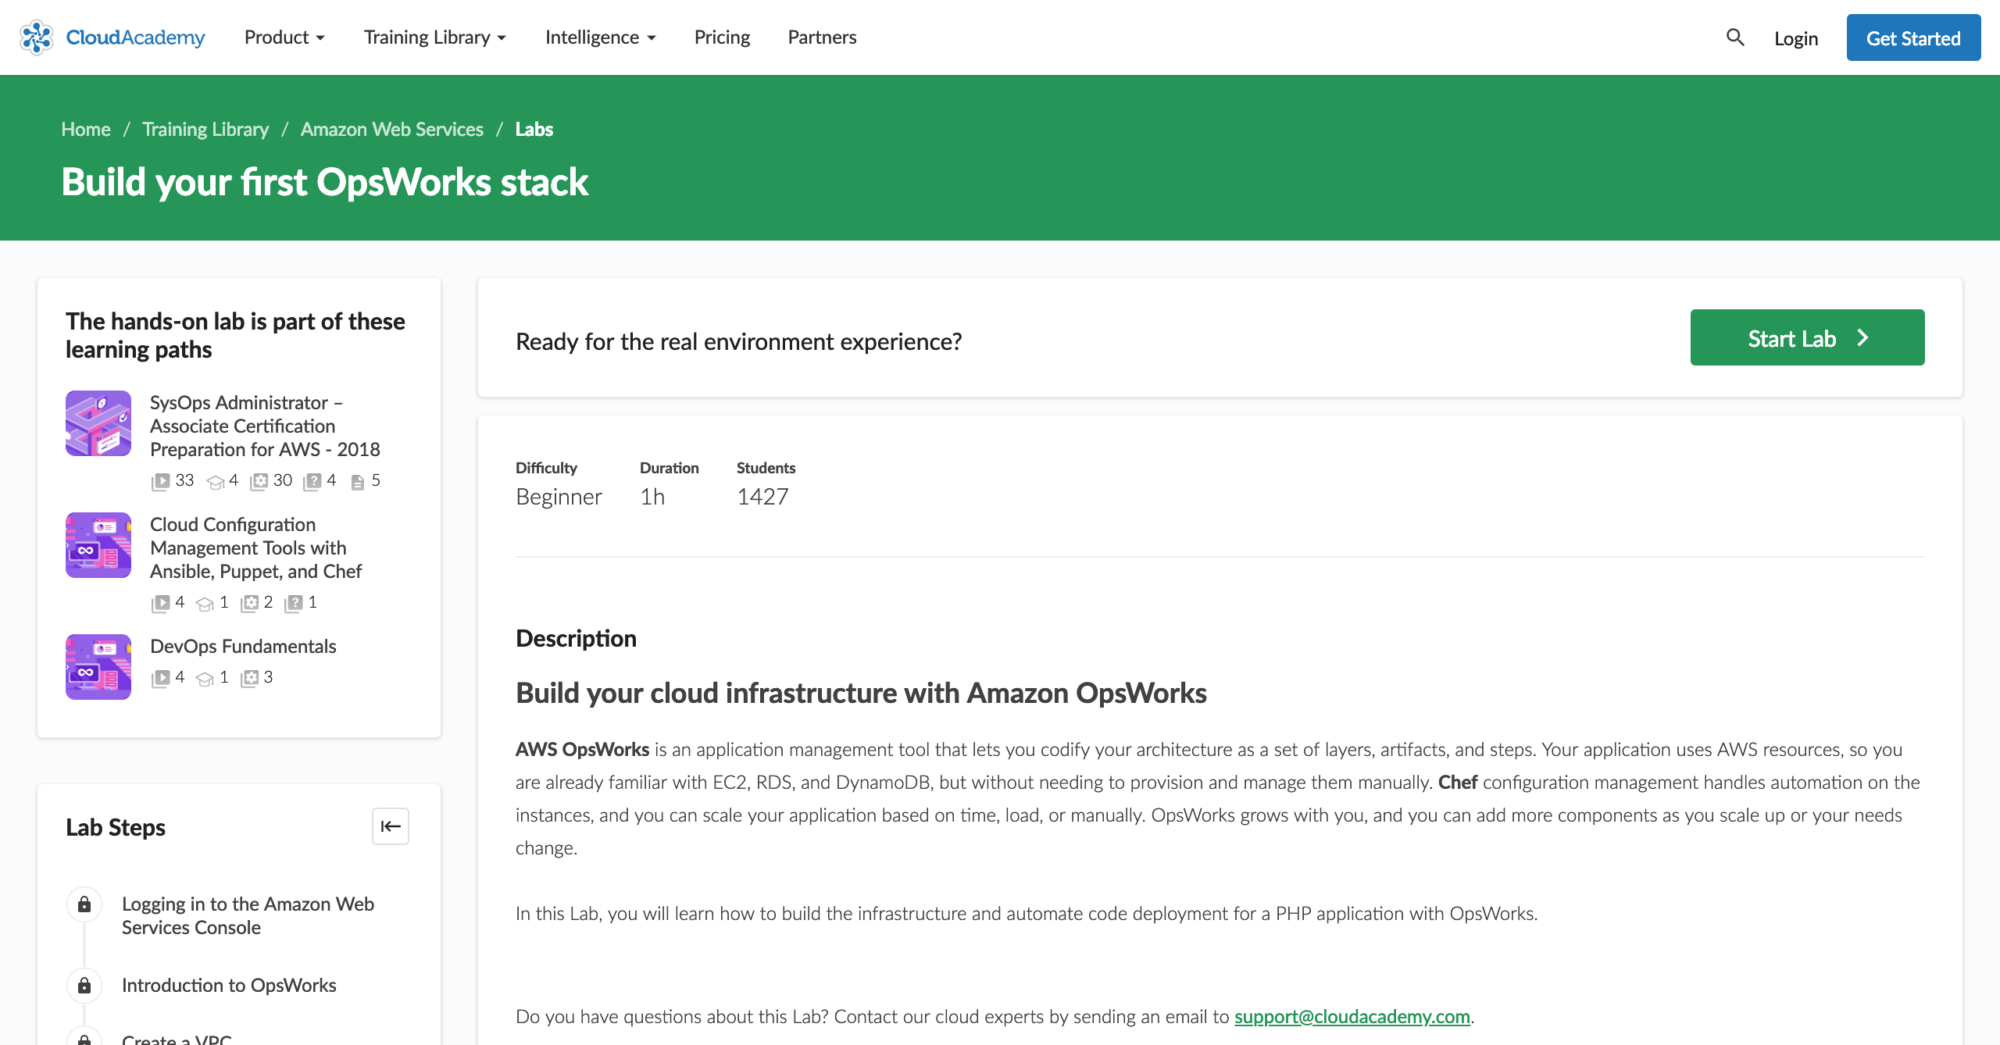 Build your first OpsWorks stack hands-on lab